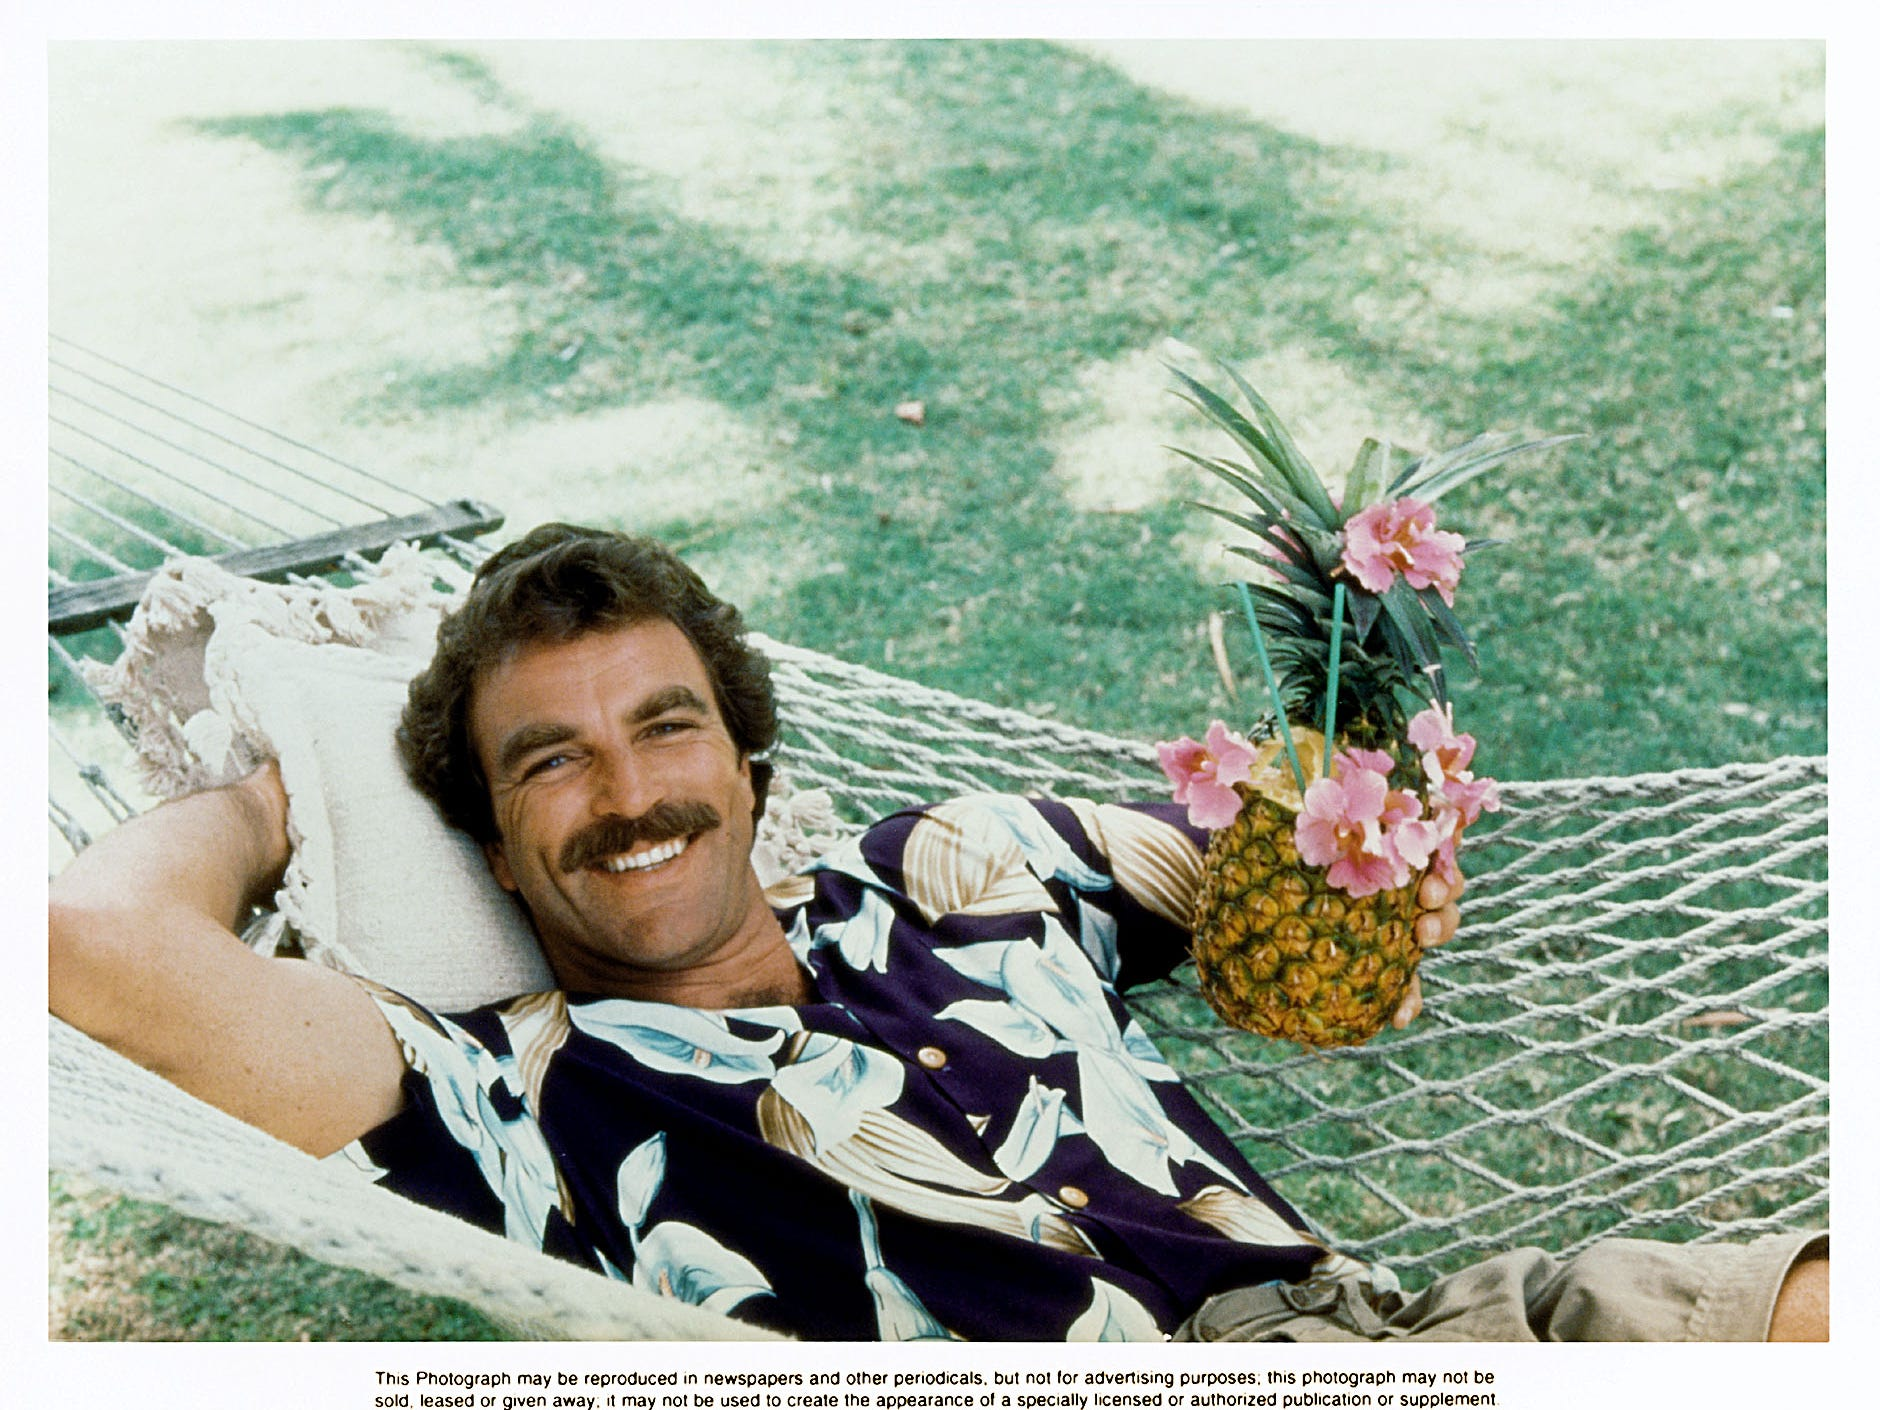 Tom Selleck in a scene from the television series Magnum P.I. --- DATE TAKEN: Rec'd 07/04  No Byline   Universal Studios Home Video        HO      - handout   ORG XMIT: ZX23291